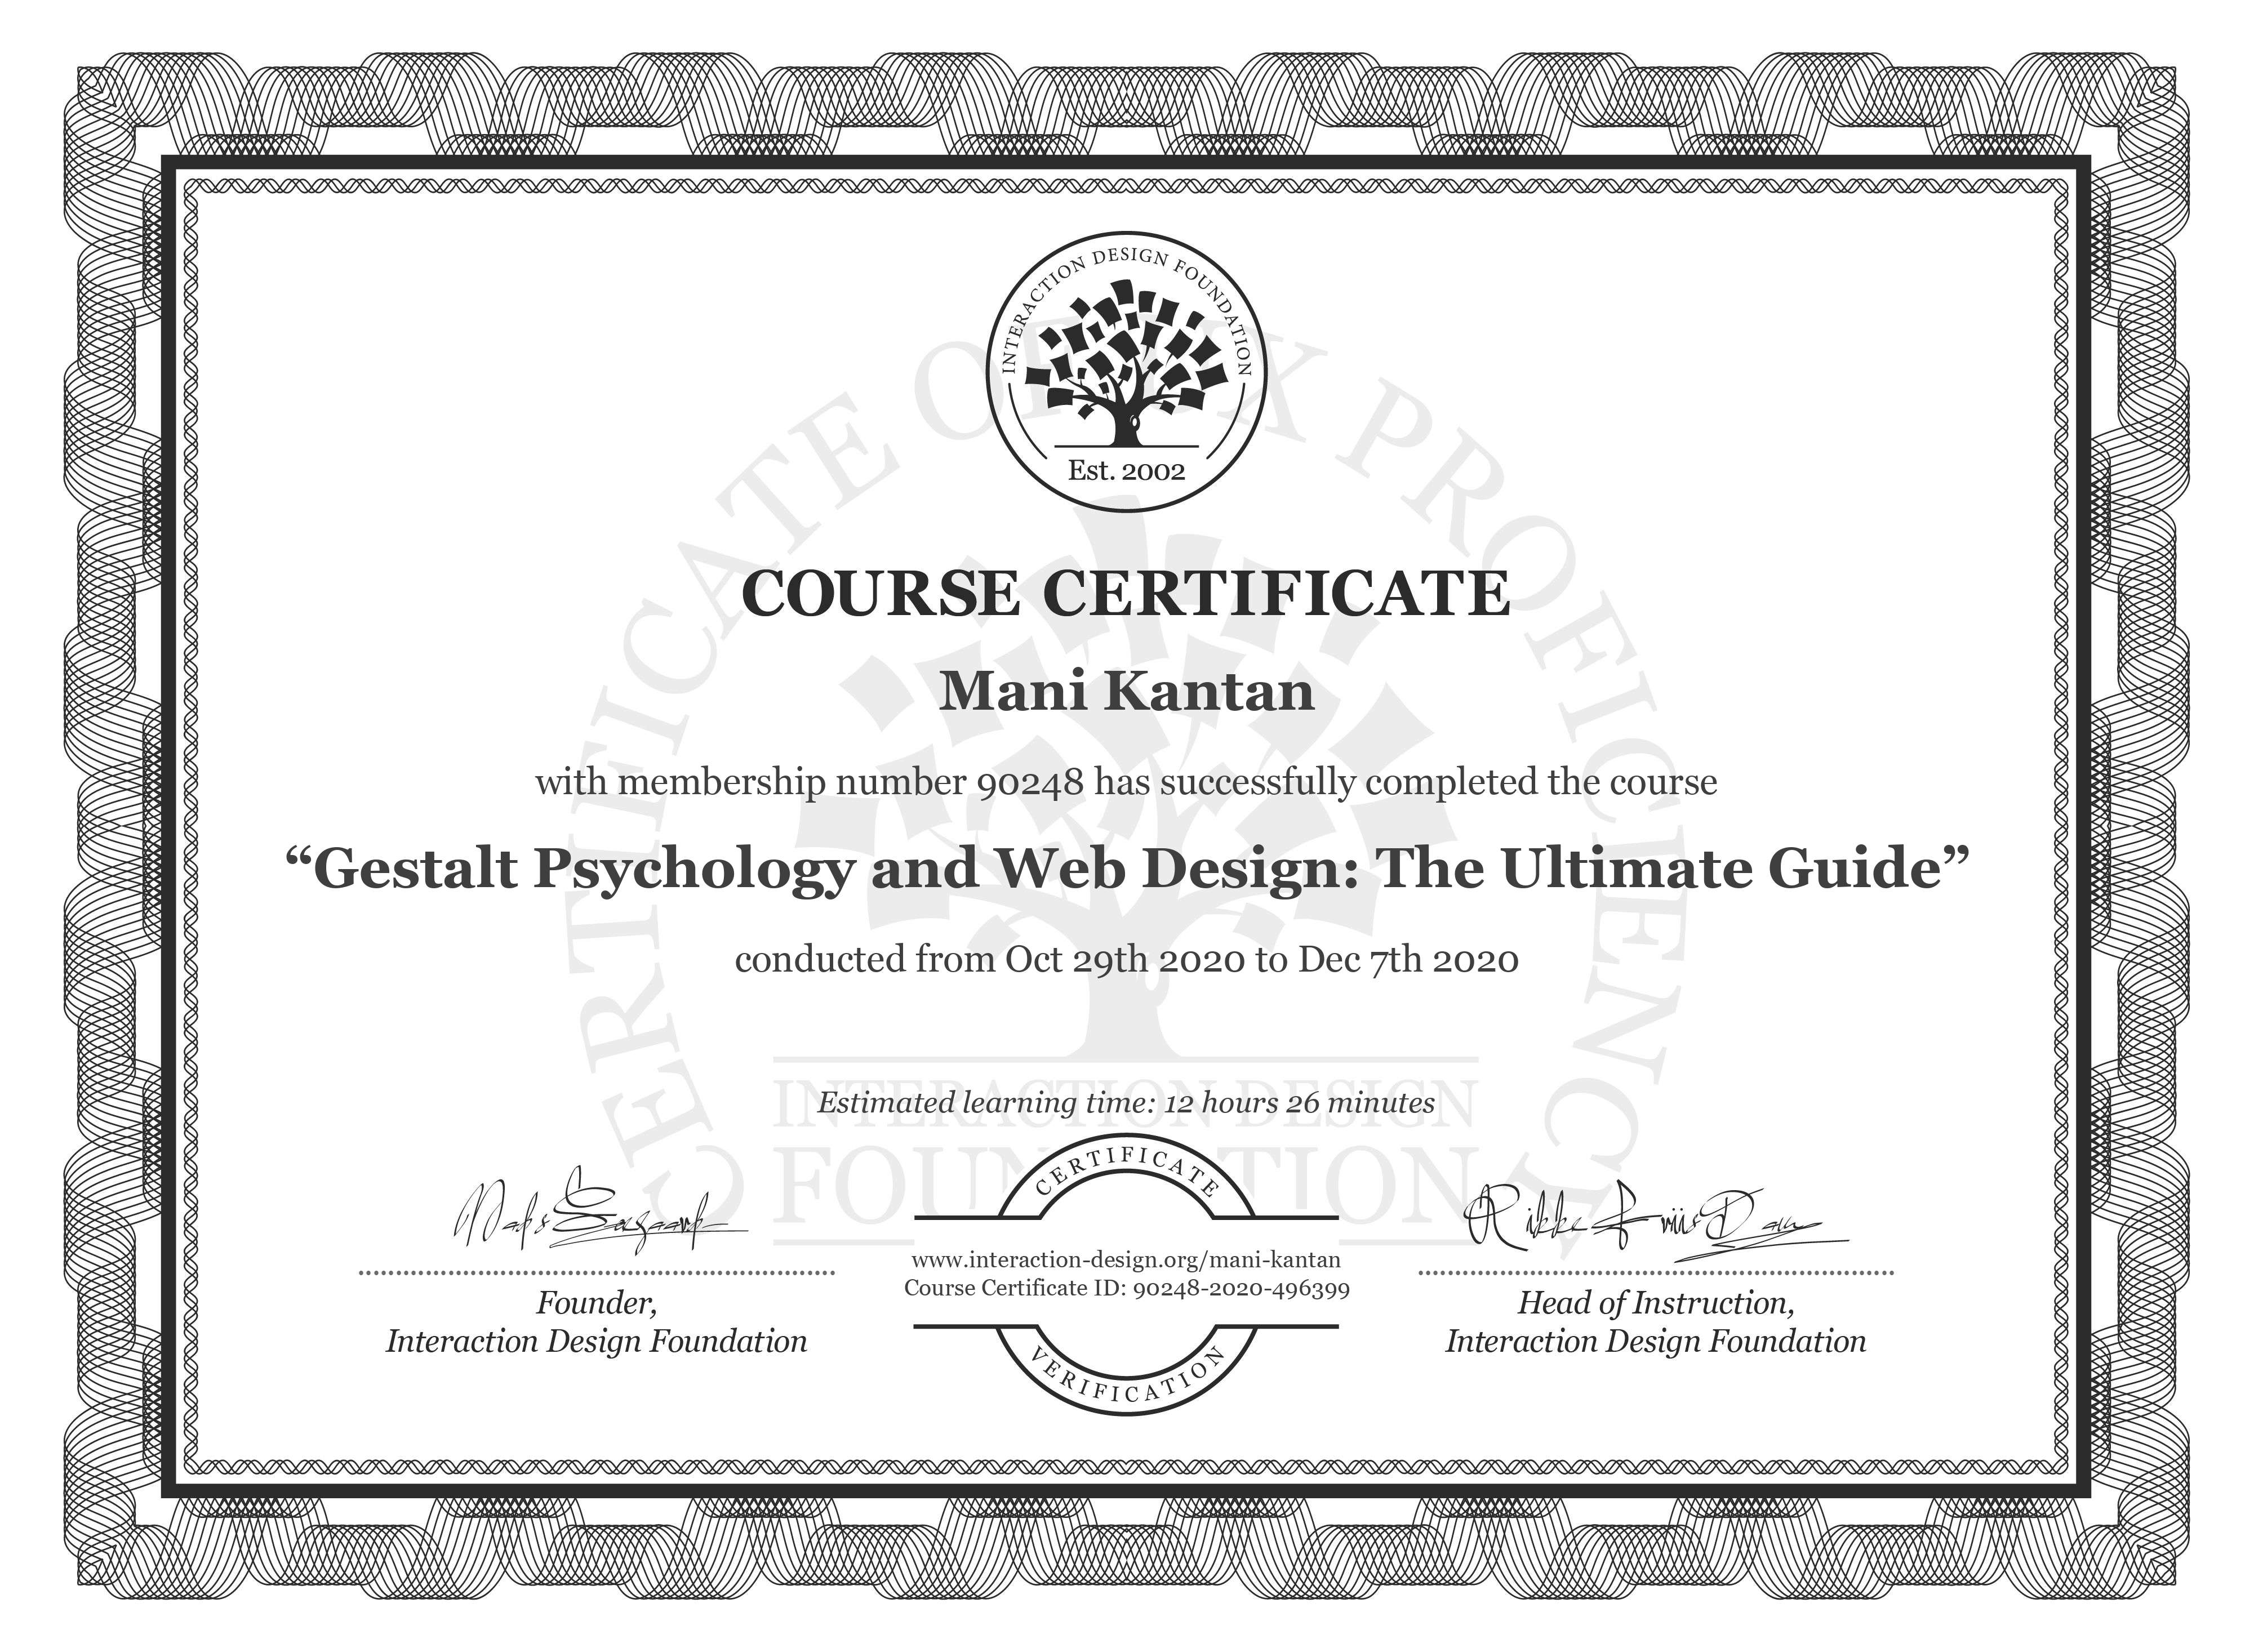 Mani Kantan's Course Certificate: Gestalt Psychology and Web Design: The Ultimate Guide